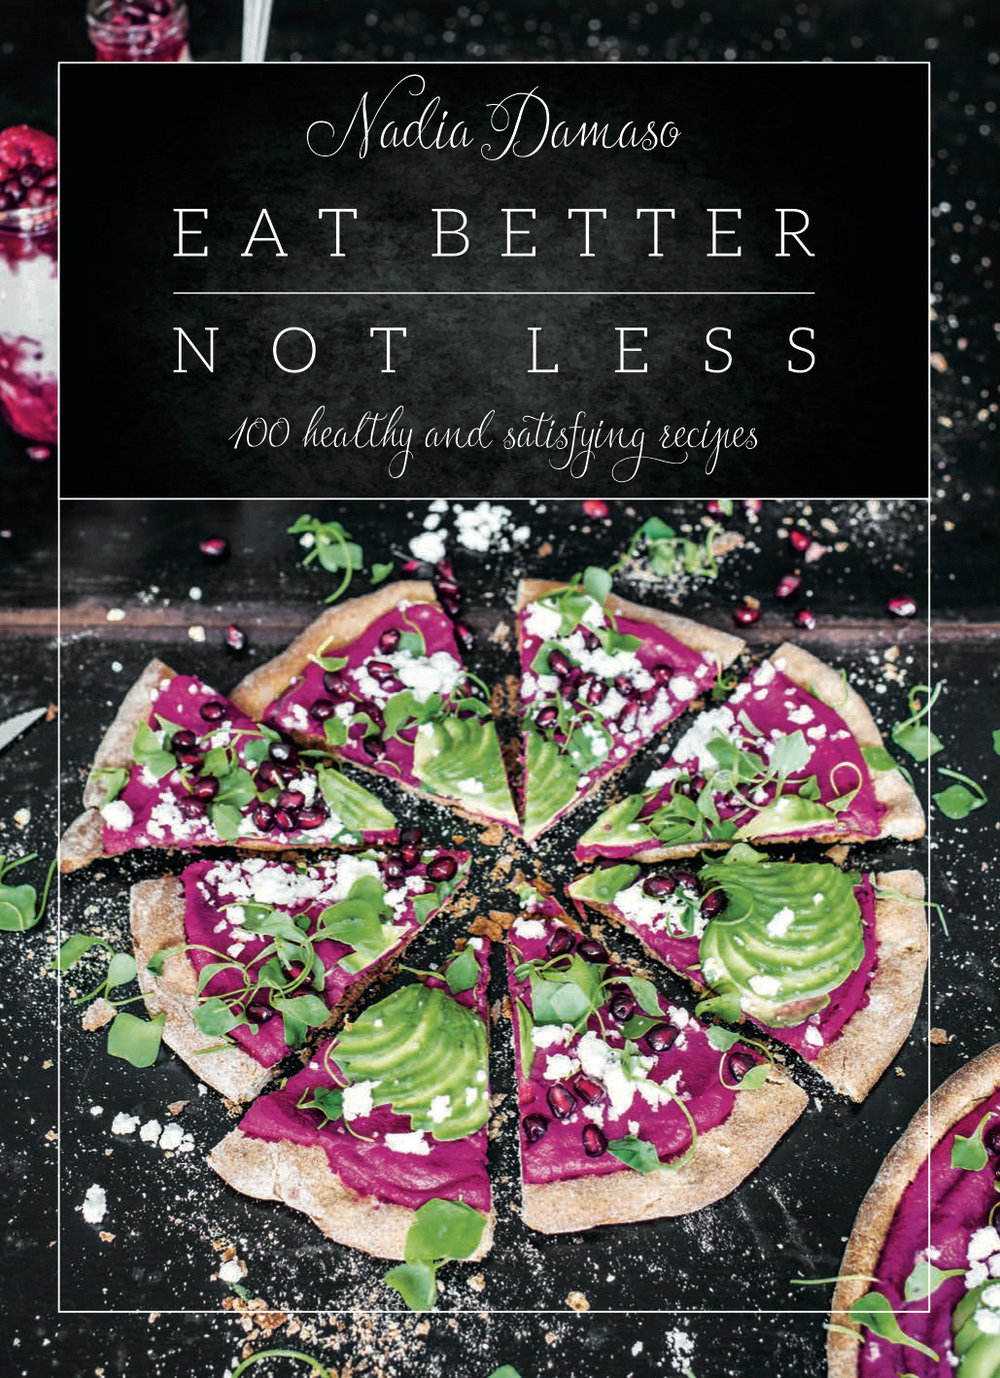 EAT BETTER NOT LESS - English Version  |  Released in 2016